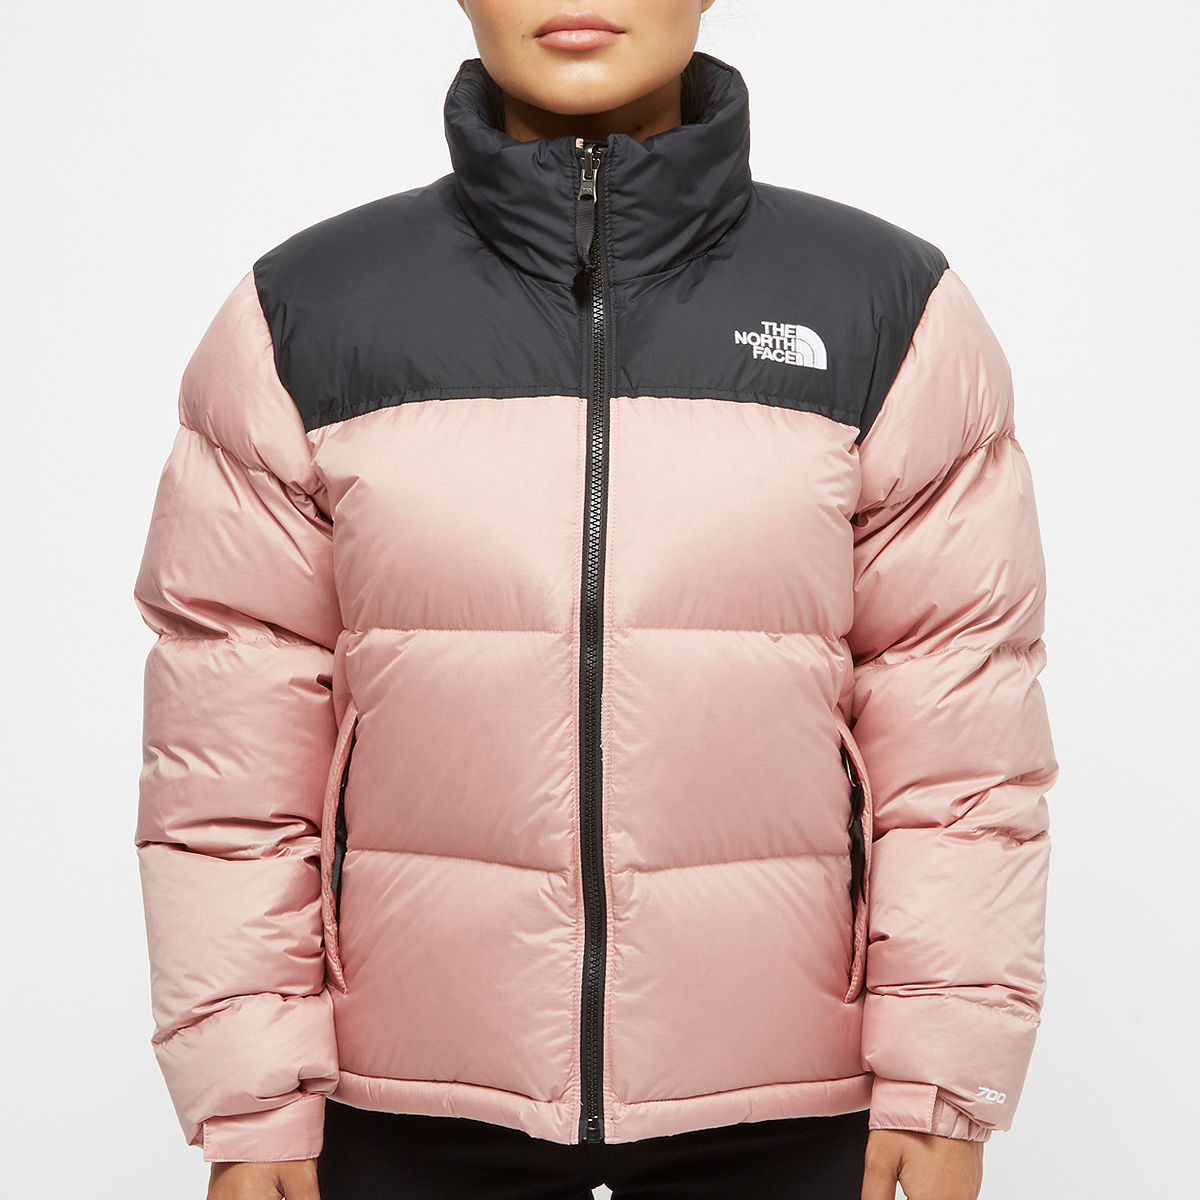 low priced 03acb 7942e RETRO NORTH NUPTSE THE DONNA Acriminalg FACE ROSE 1996 MISTY xvwgx4qI5